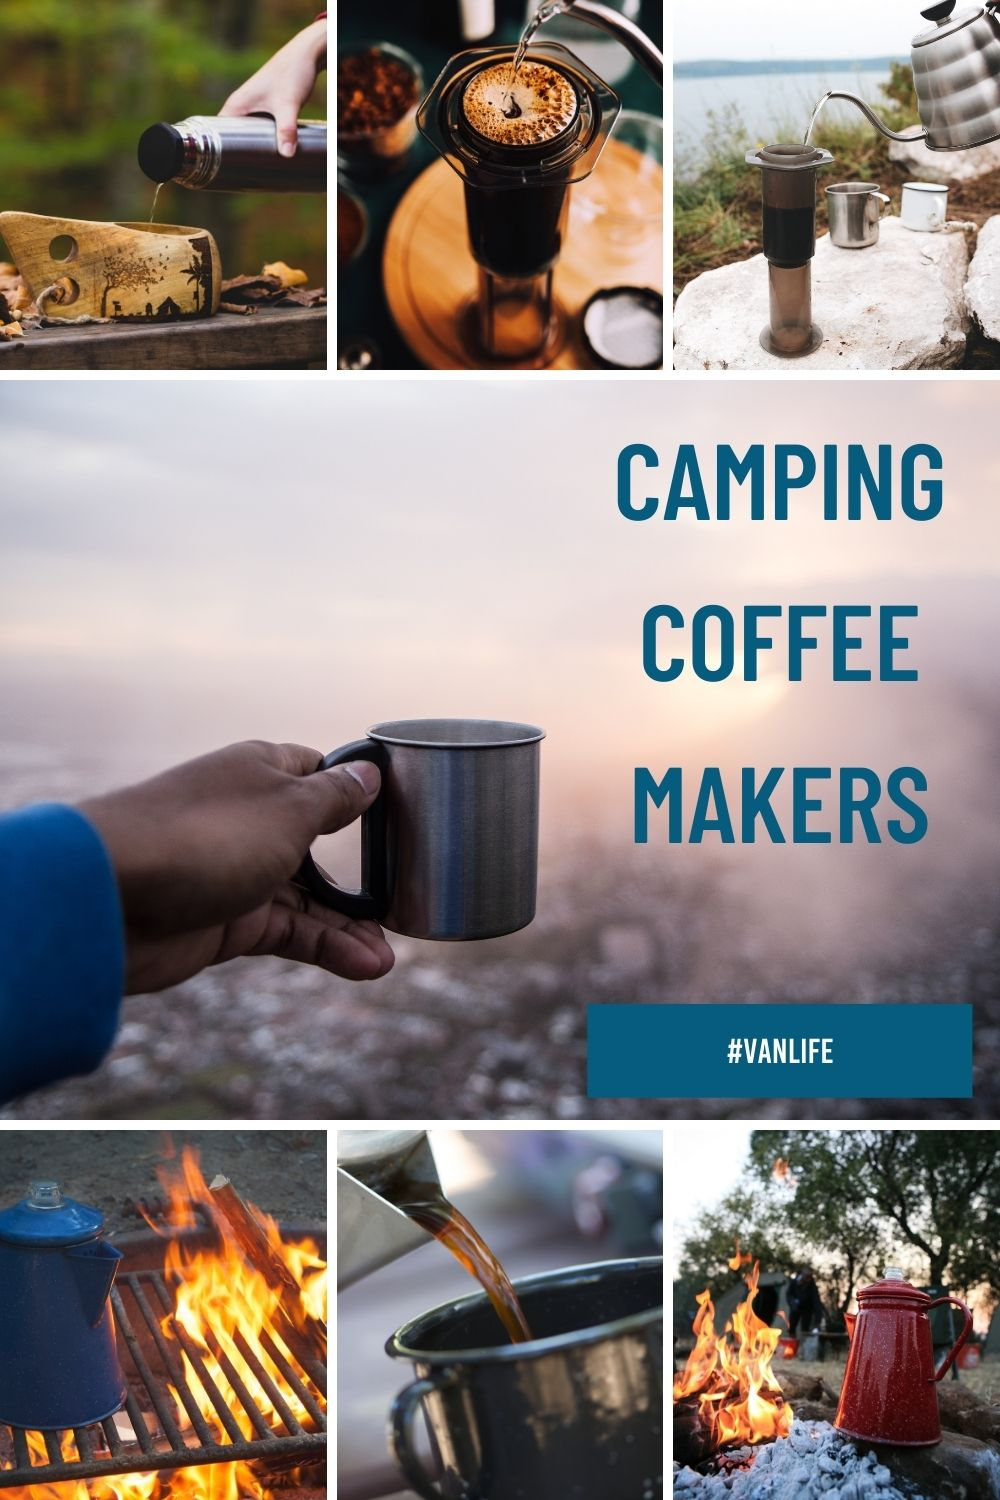 8 Best Camping Coffee Makers for campervans, van life, rv living & camping for pinterest